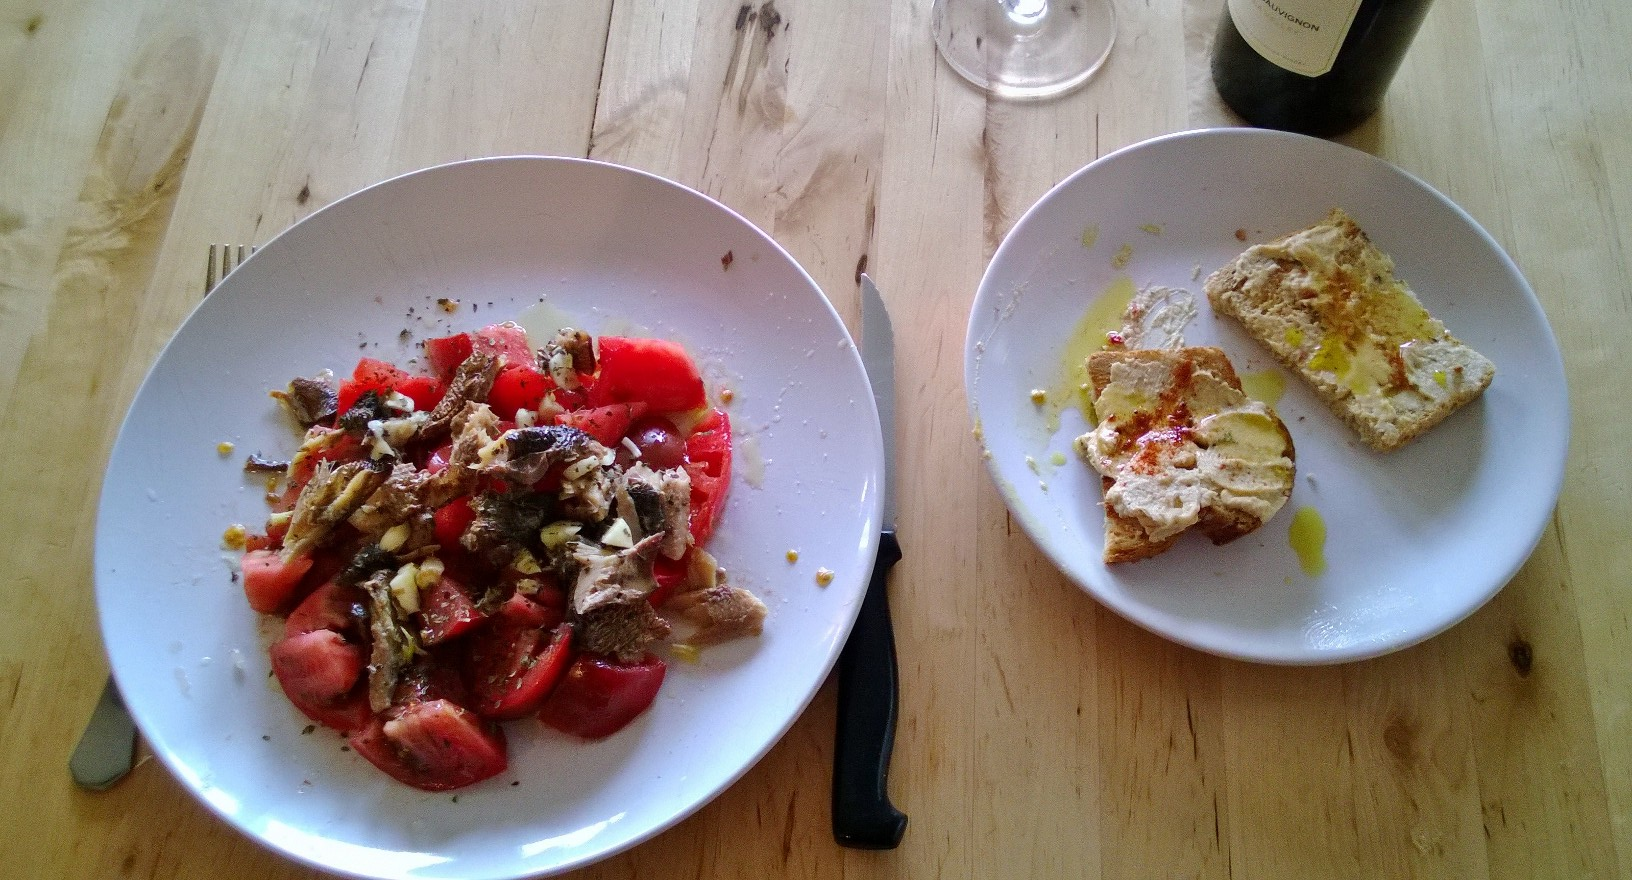 Heirloom tomatoes, smoked herrings, salt, minced garlic, basil, Arbequina extra virgin olive oil + hummus italian bread toasts with paprika and more... extra virgin olive oil